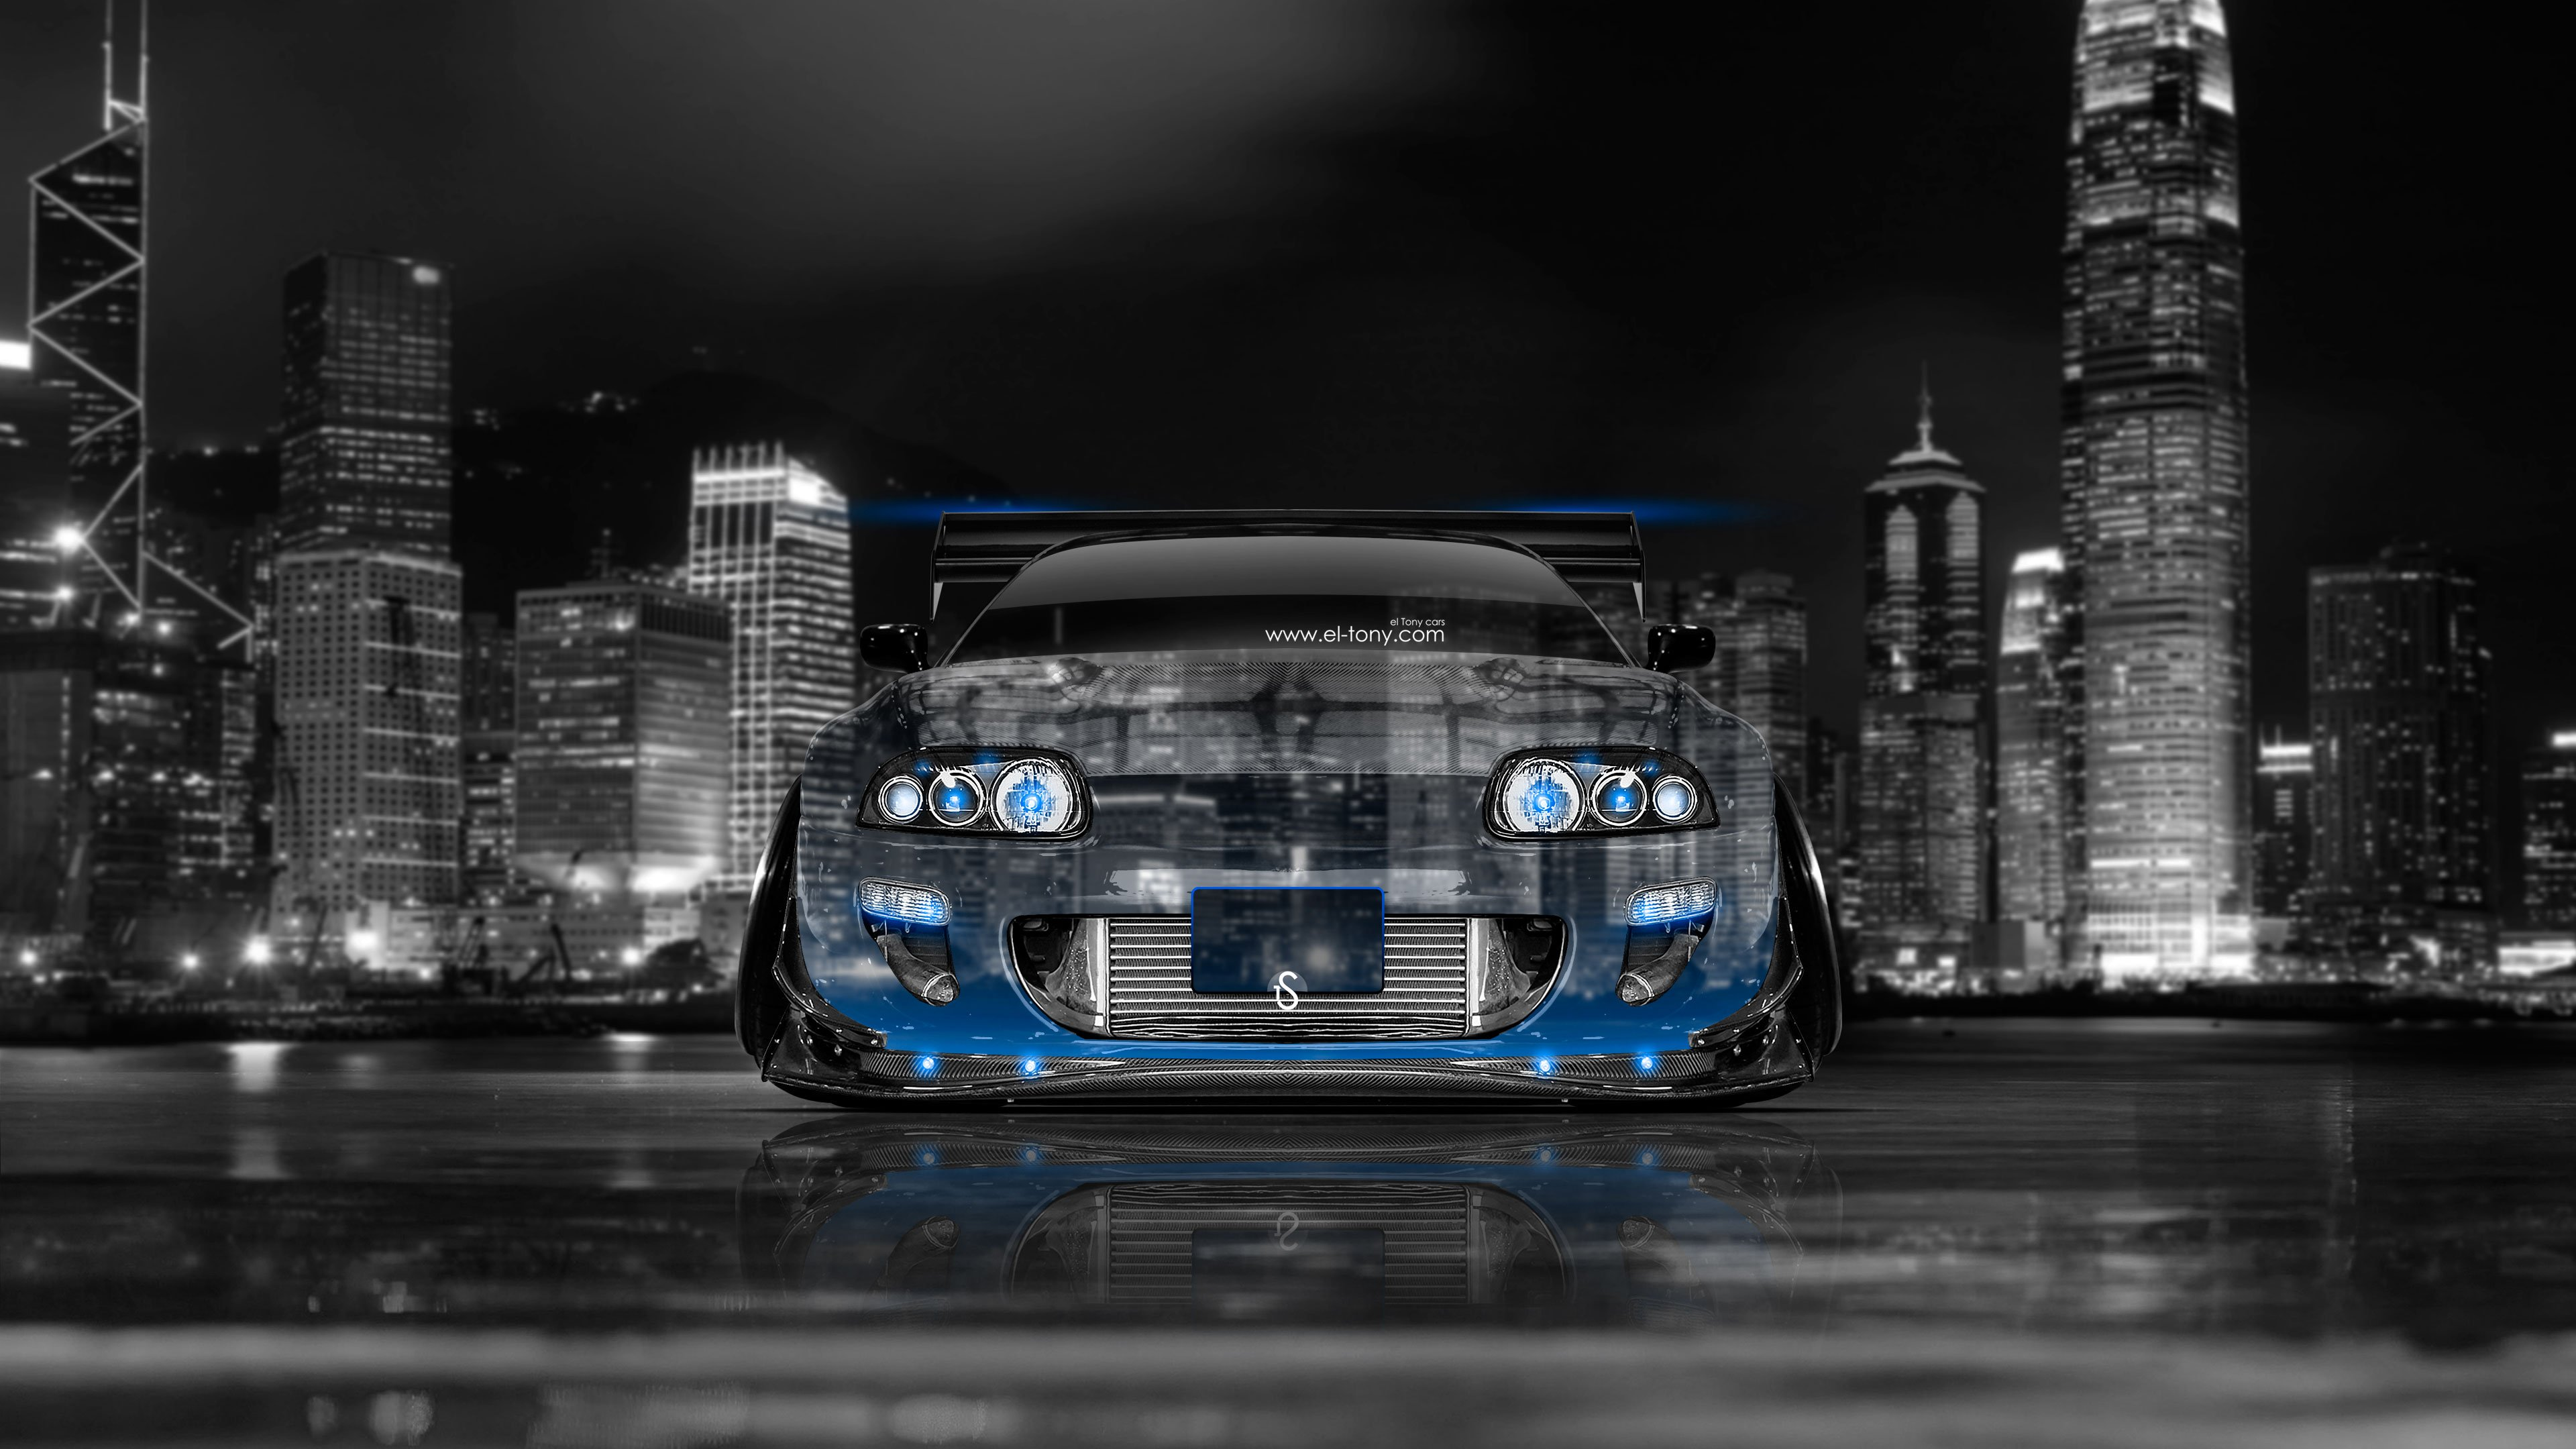 Supra JDM Tuning Front Crystal City Car 2014 Blue Neon 4K Wallpapers  3840x2160